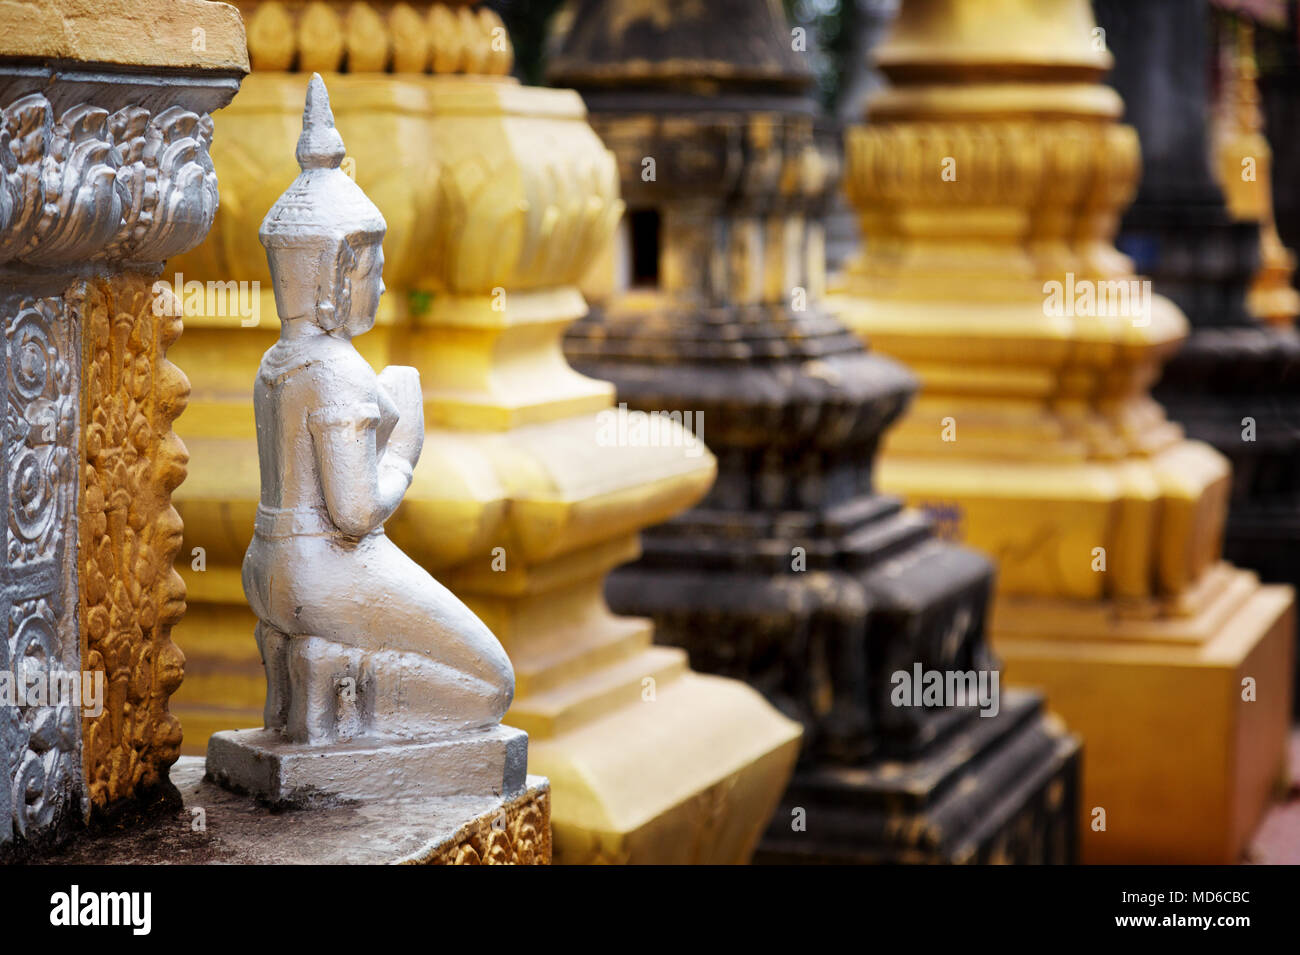 Buddhist Religion Symbols And Statues Related To Buddhism